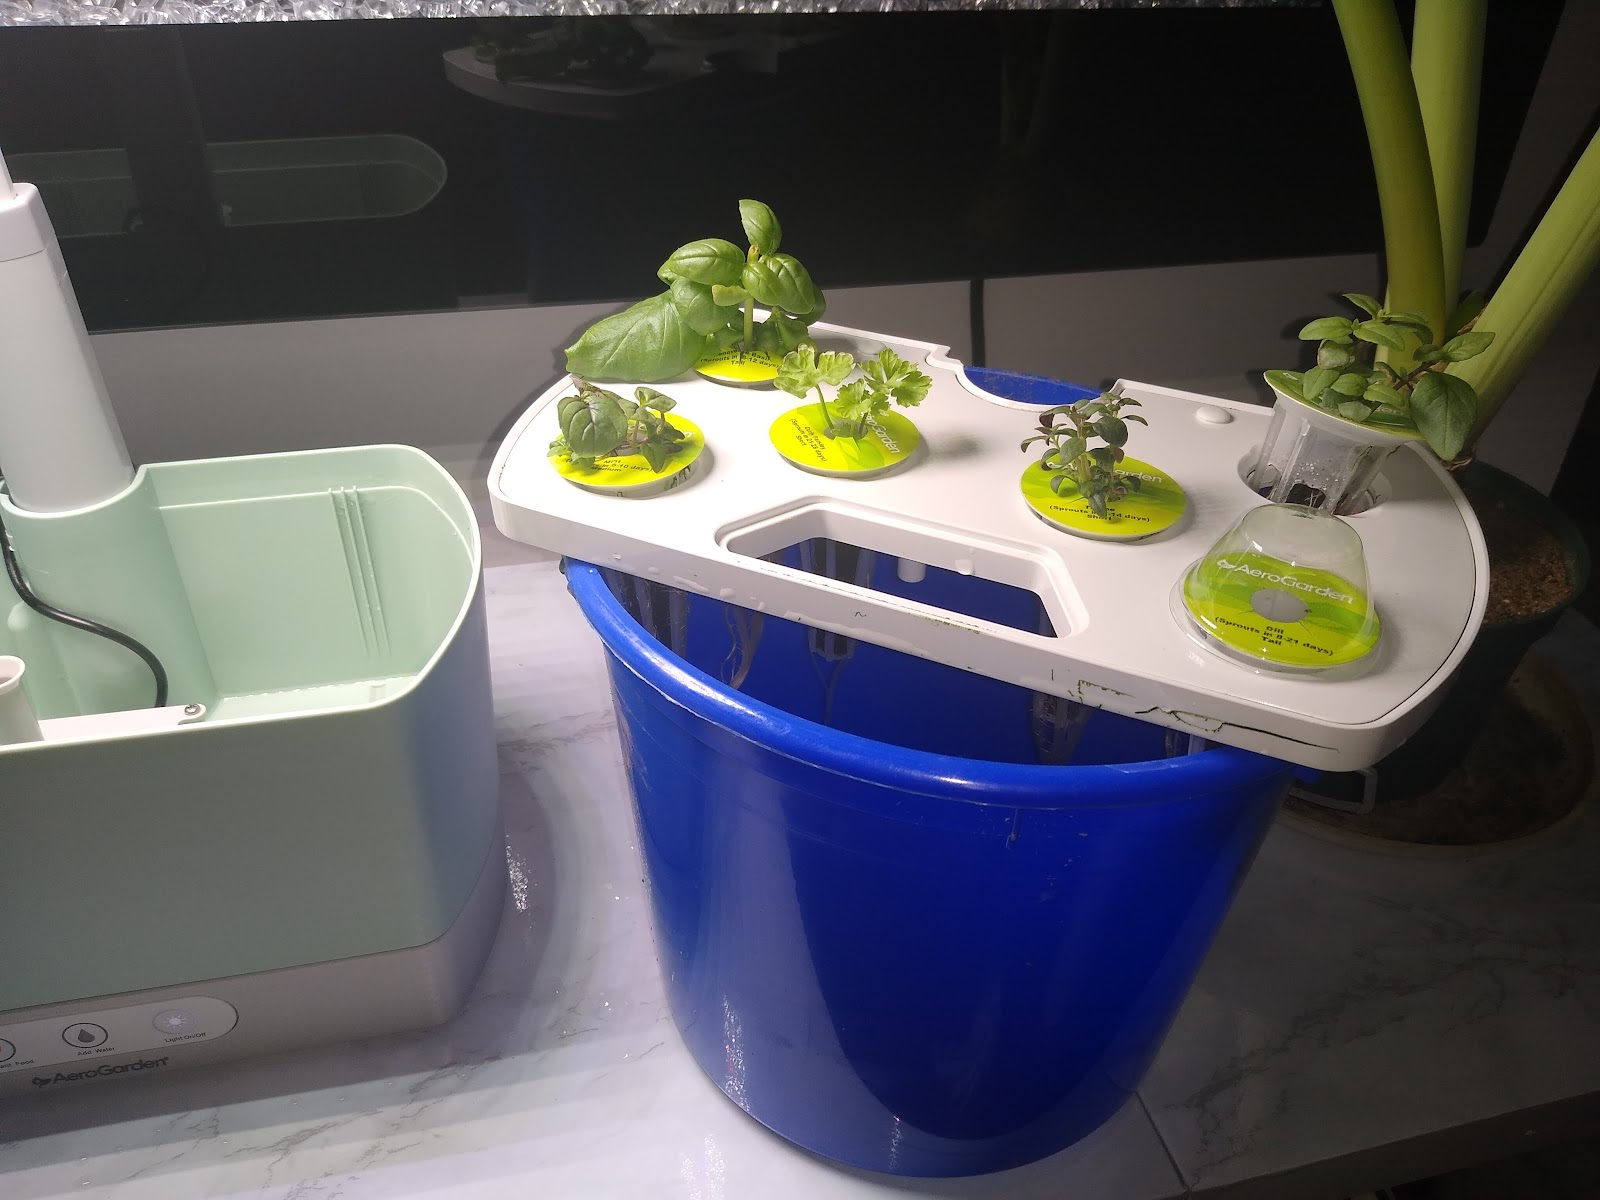 AeroGarden Harvest changing water picture